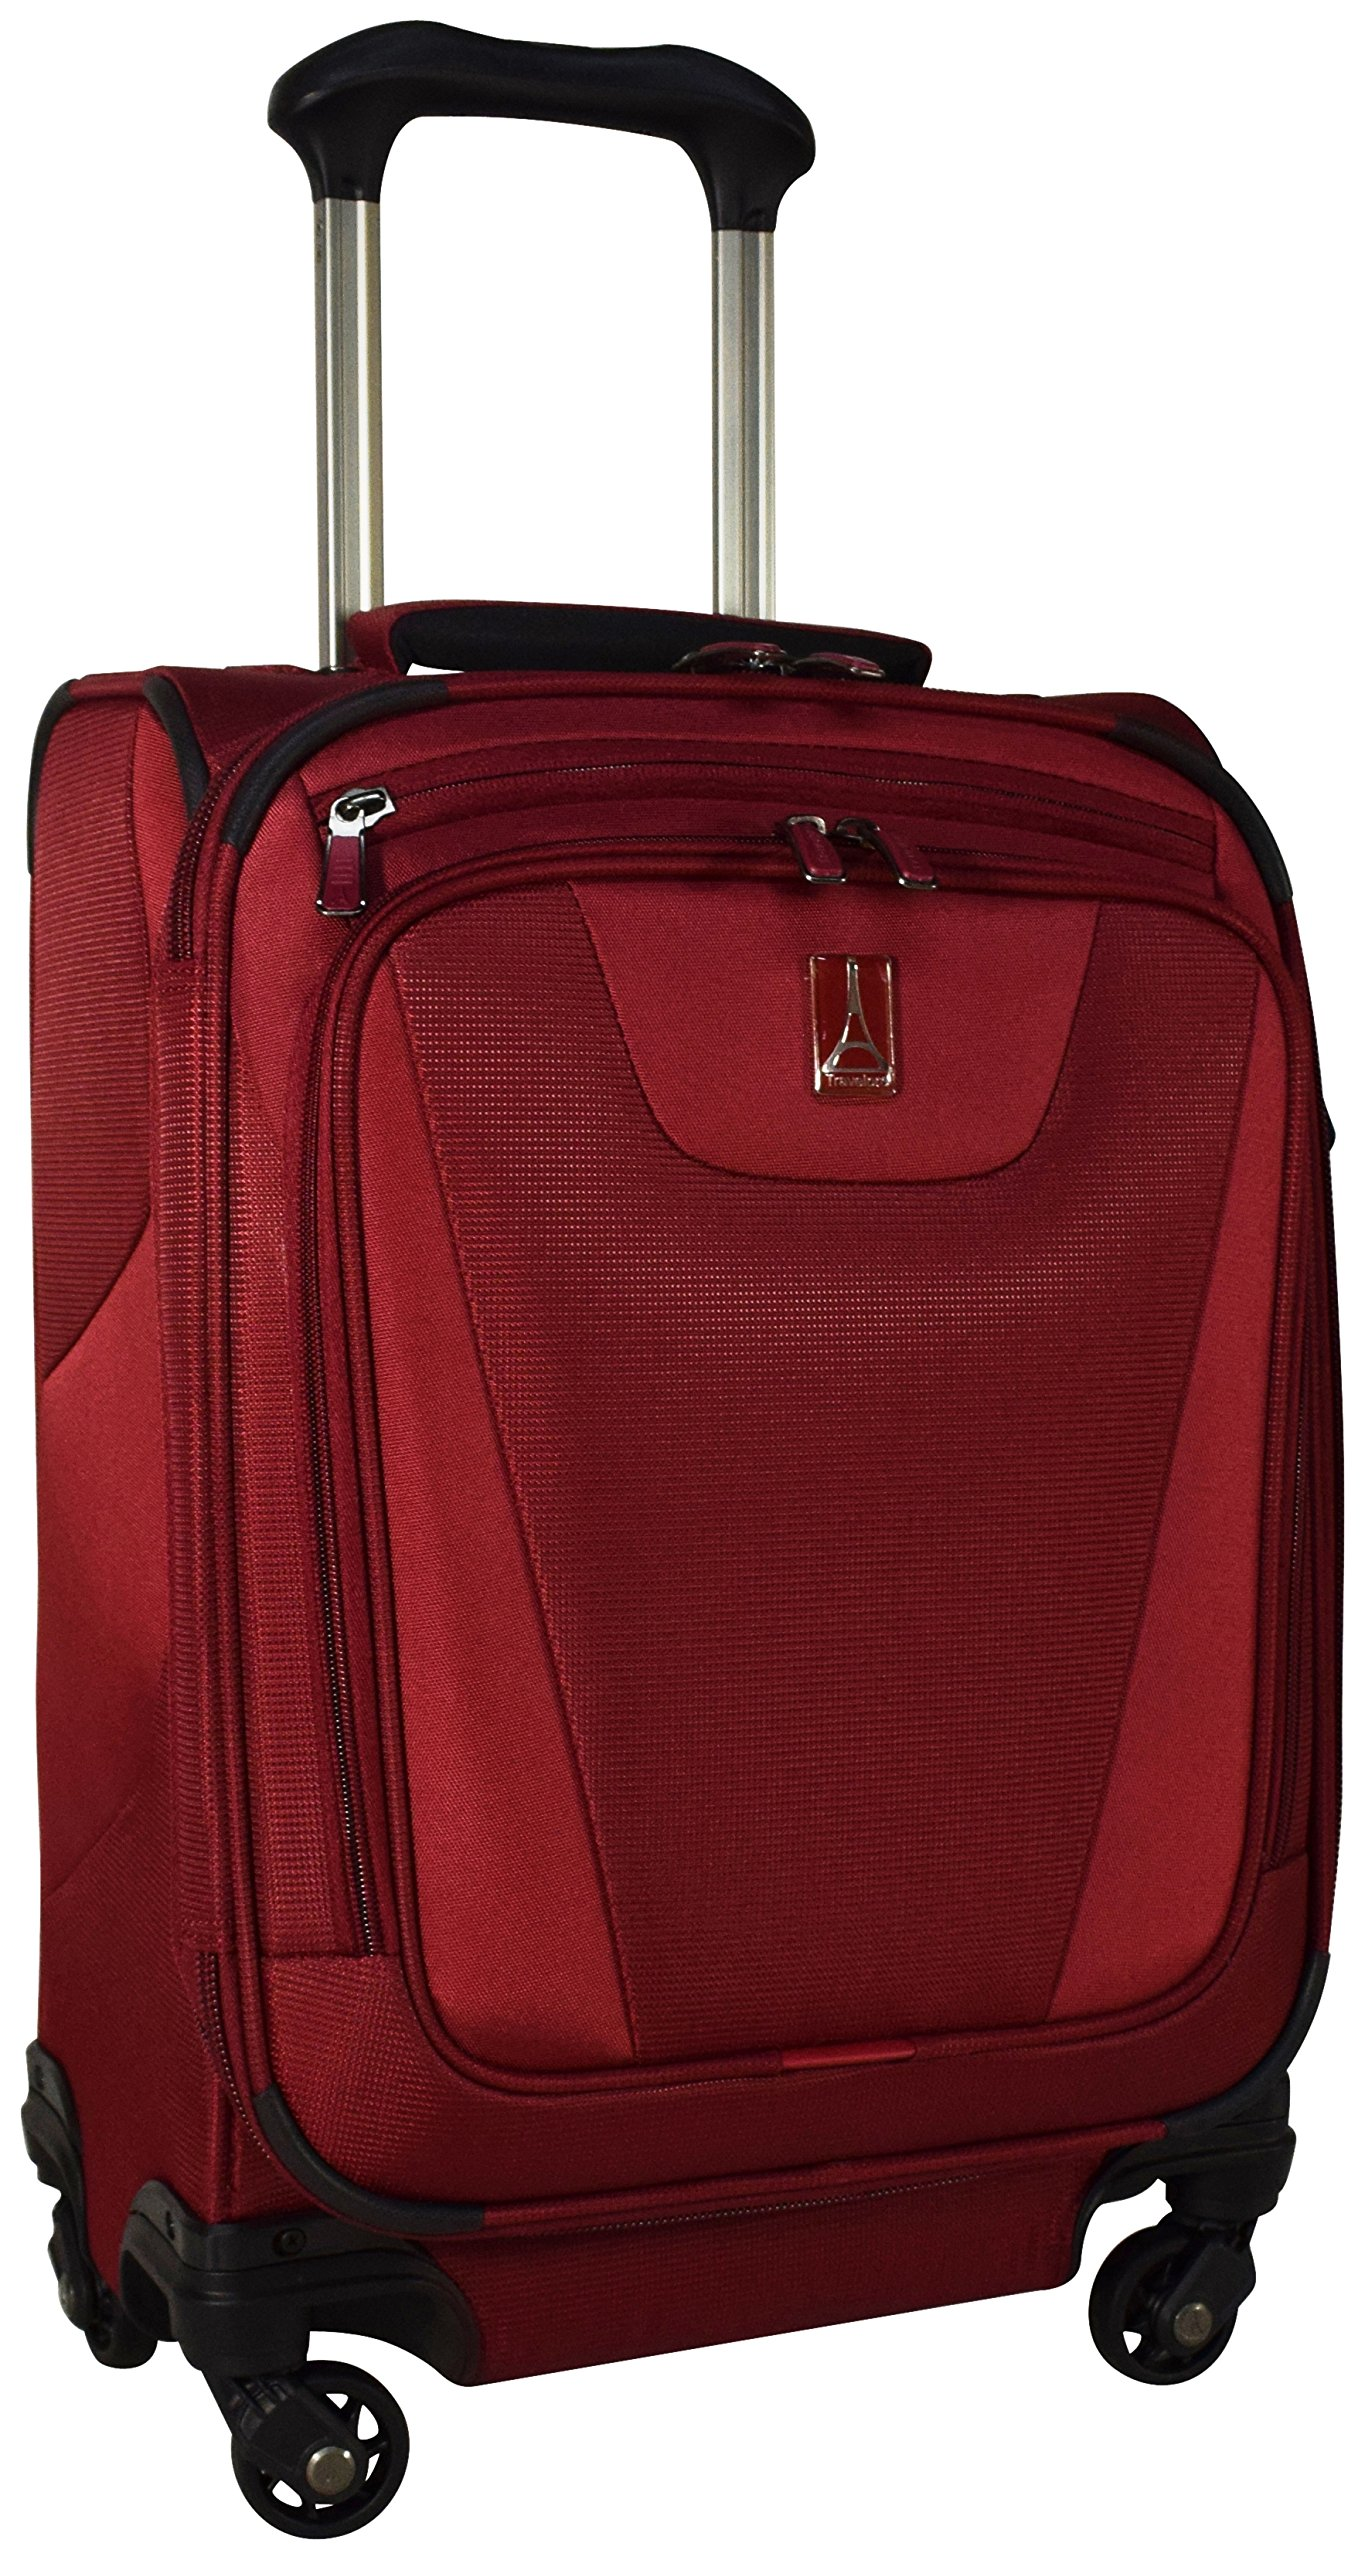 Travelpro Maxlite 4 Expandable 21 Inch Spinner Suitcase (Merlot)